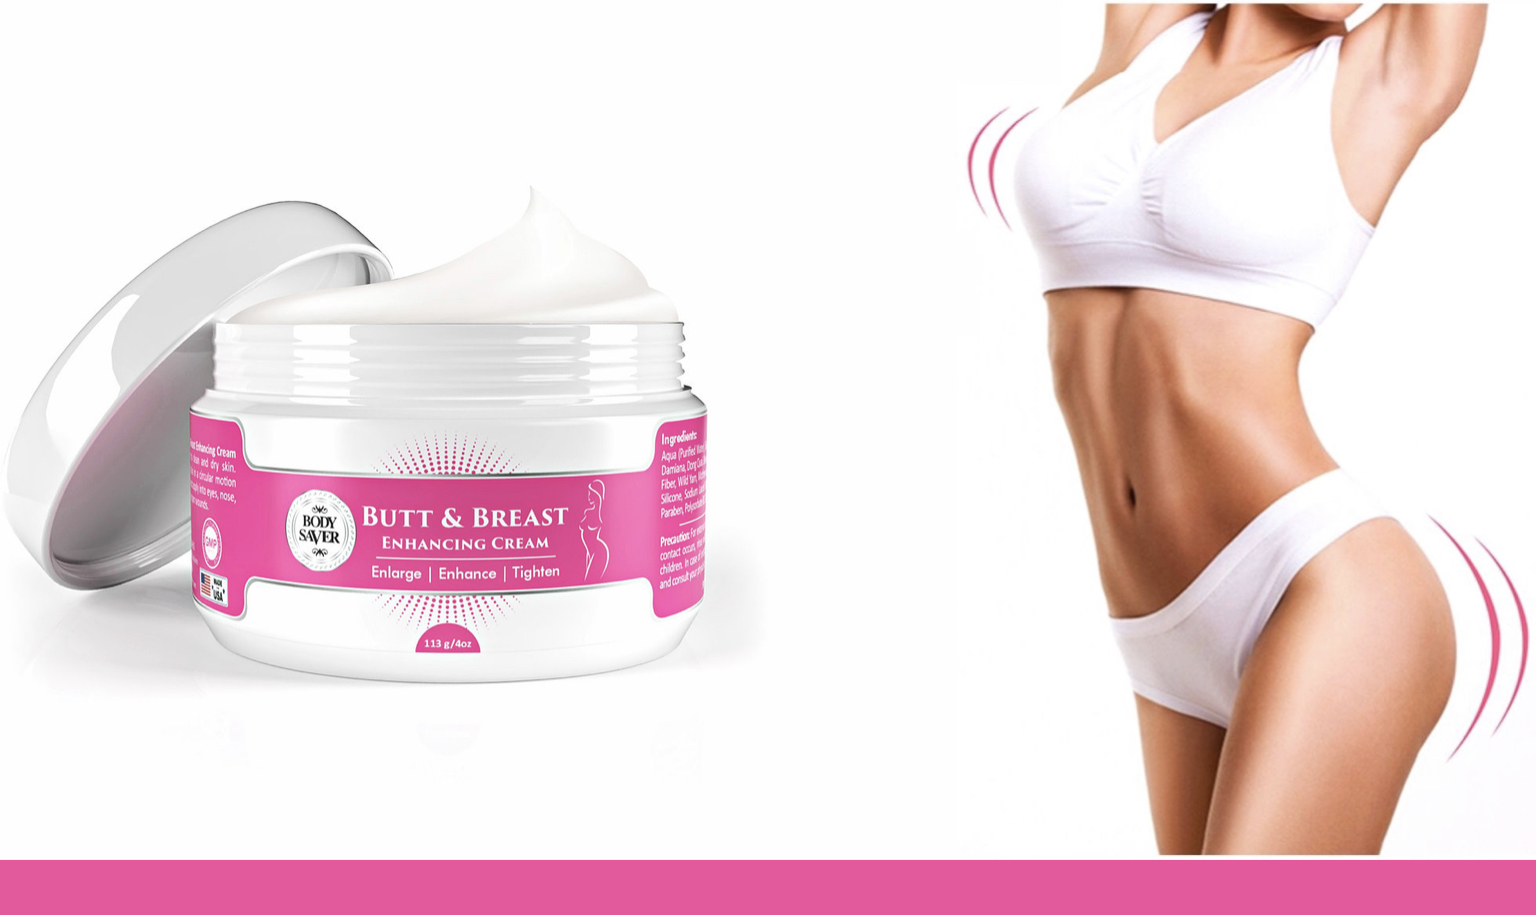 Butt and Breast Enhancing Cream